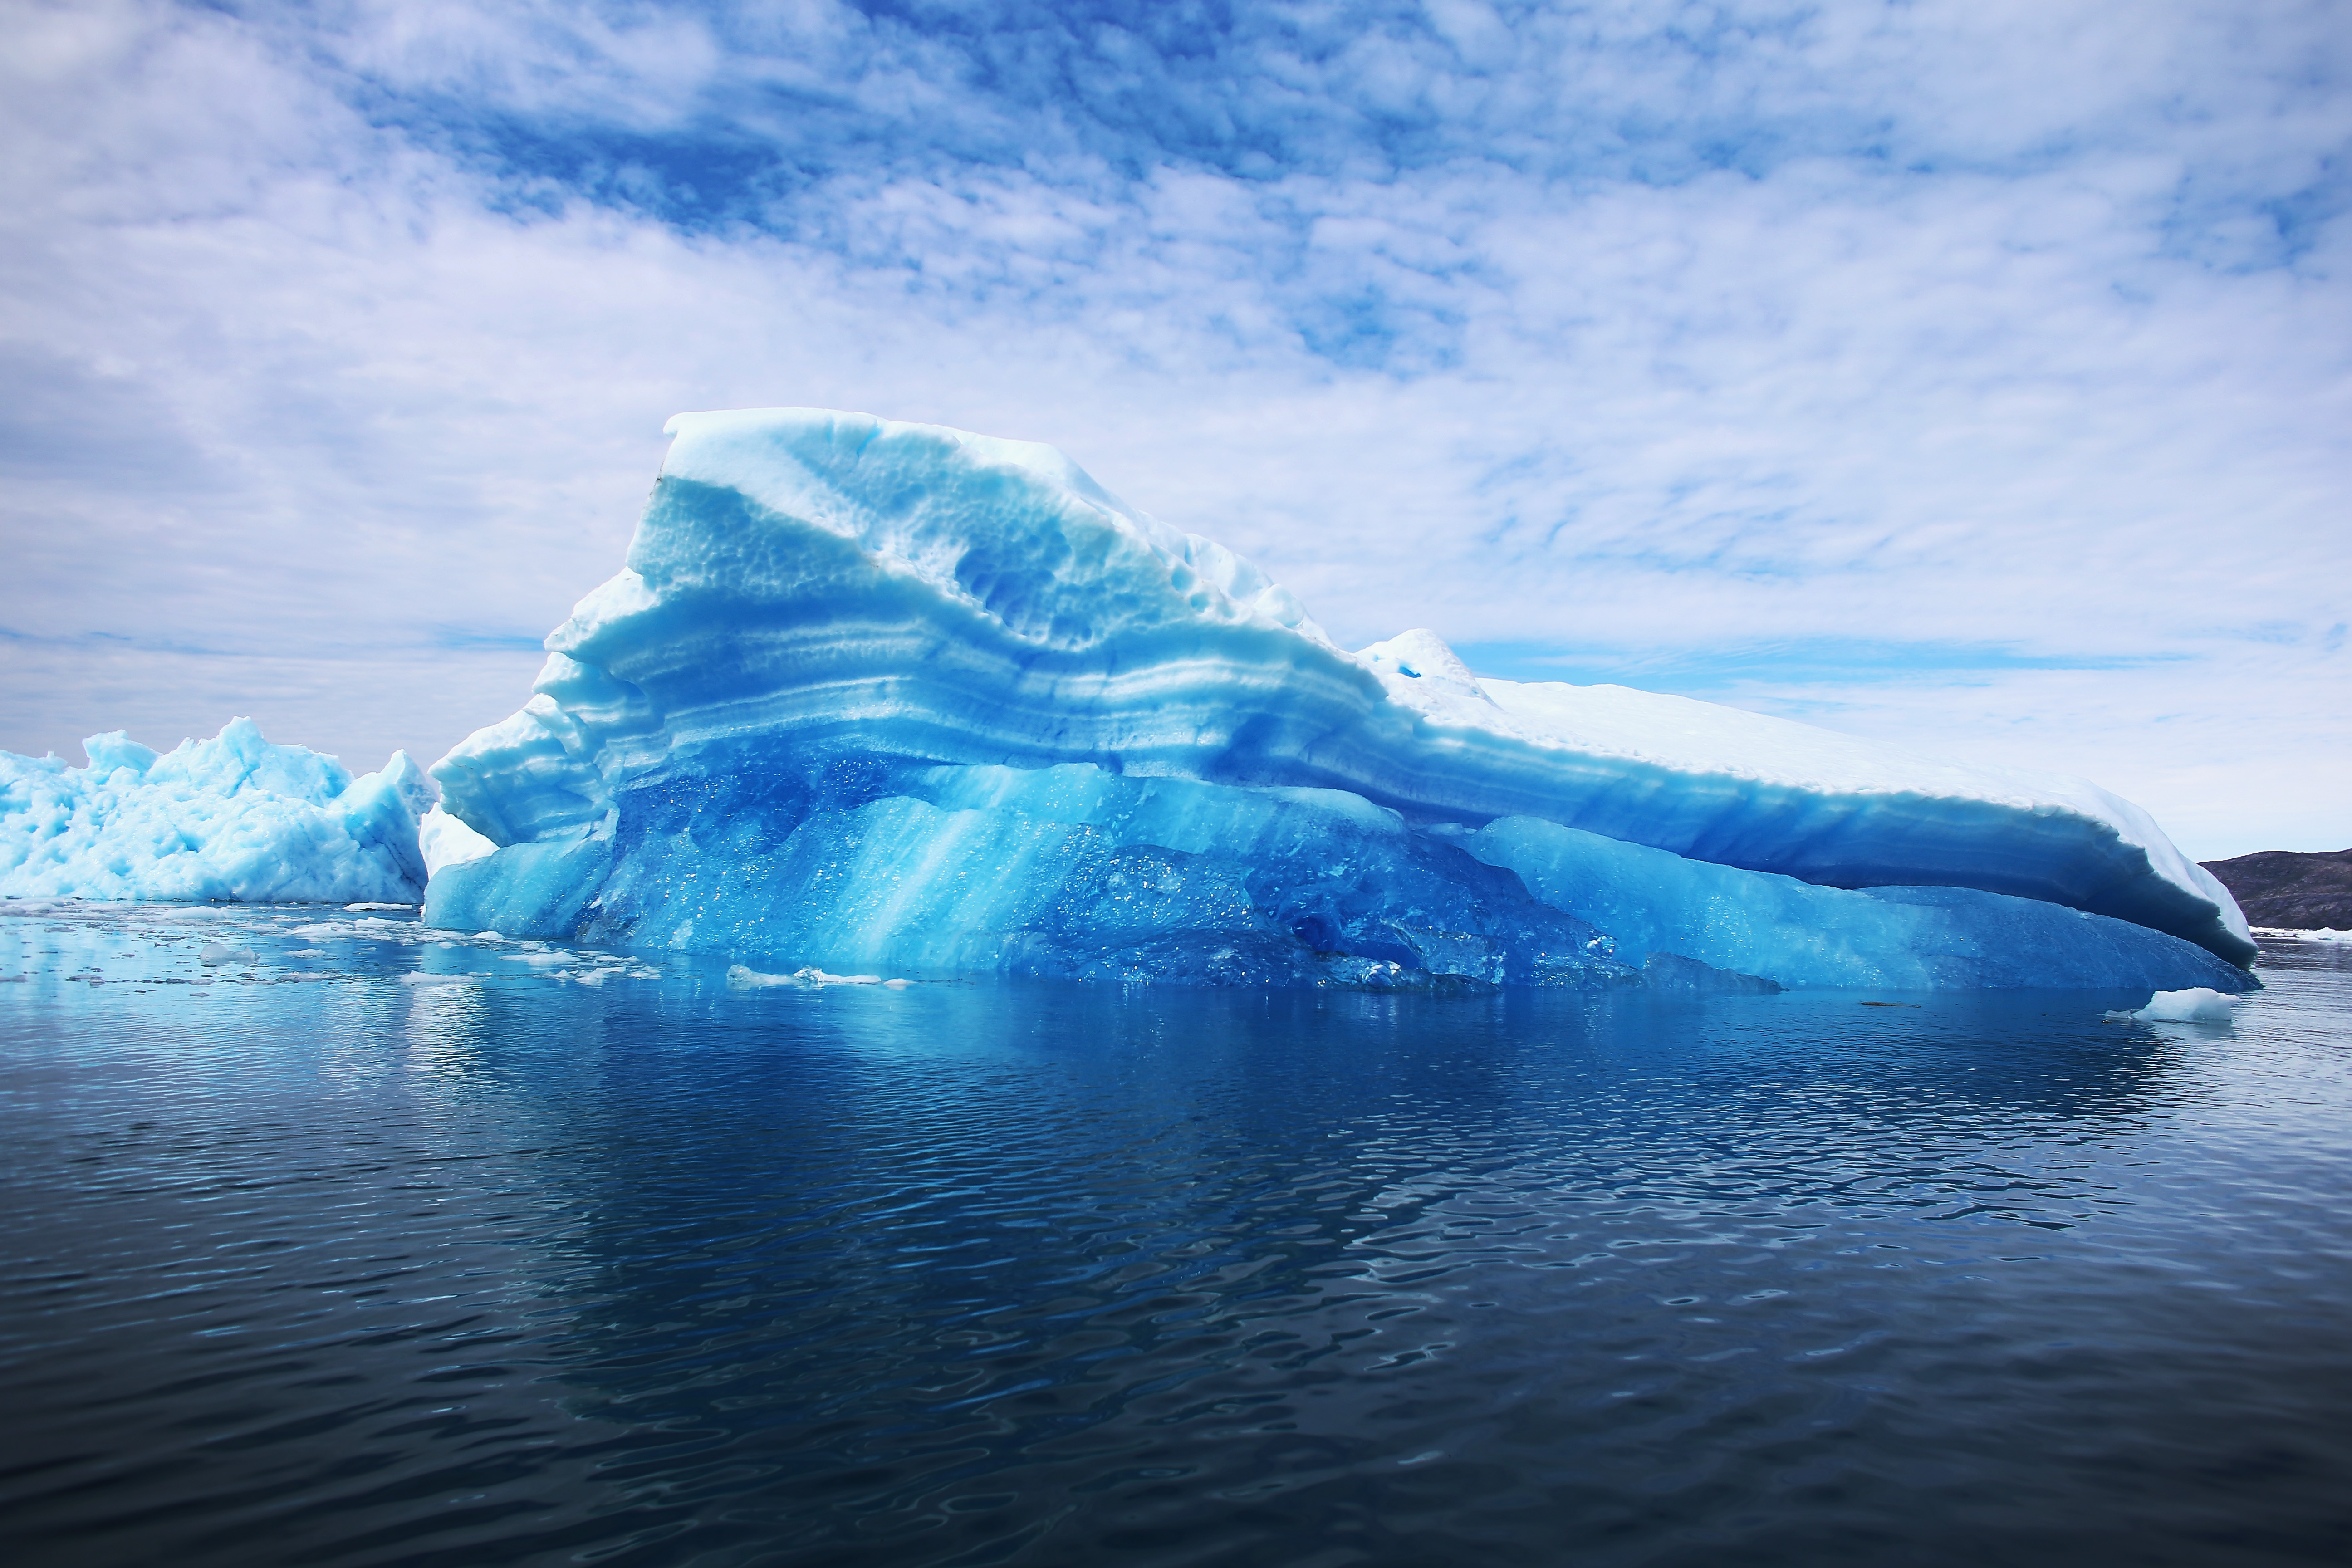 Revealed: How Giant Icebergs Breathe Life Into Remote Oceans